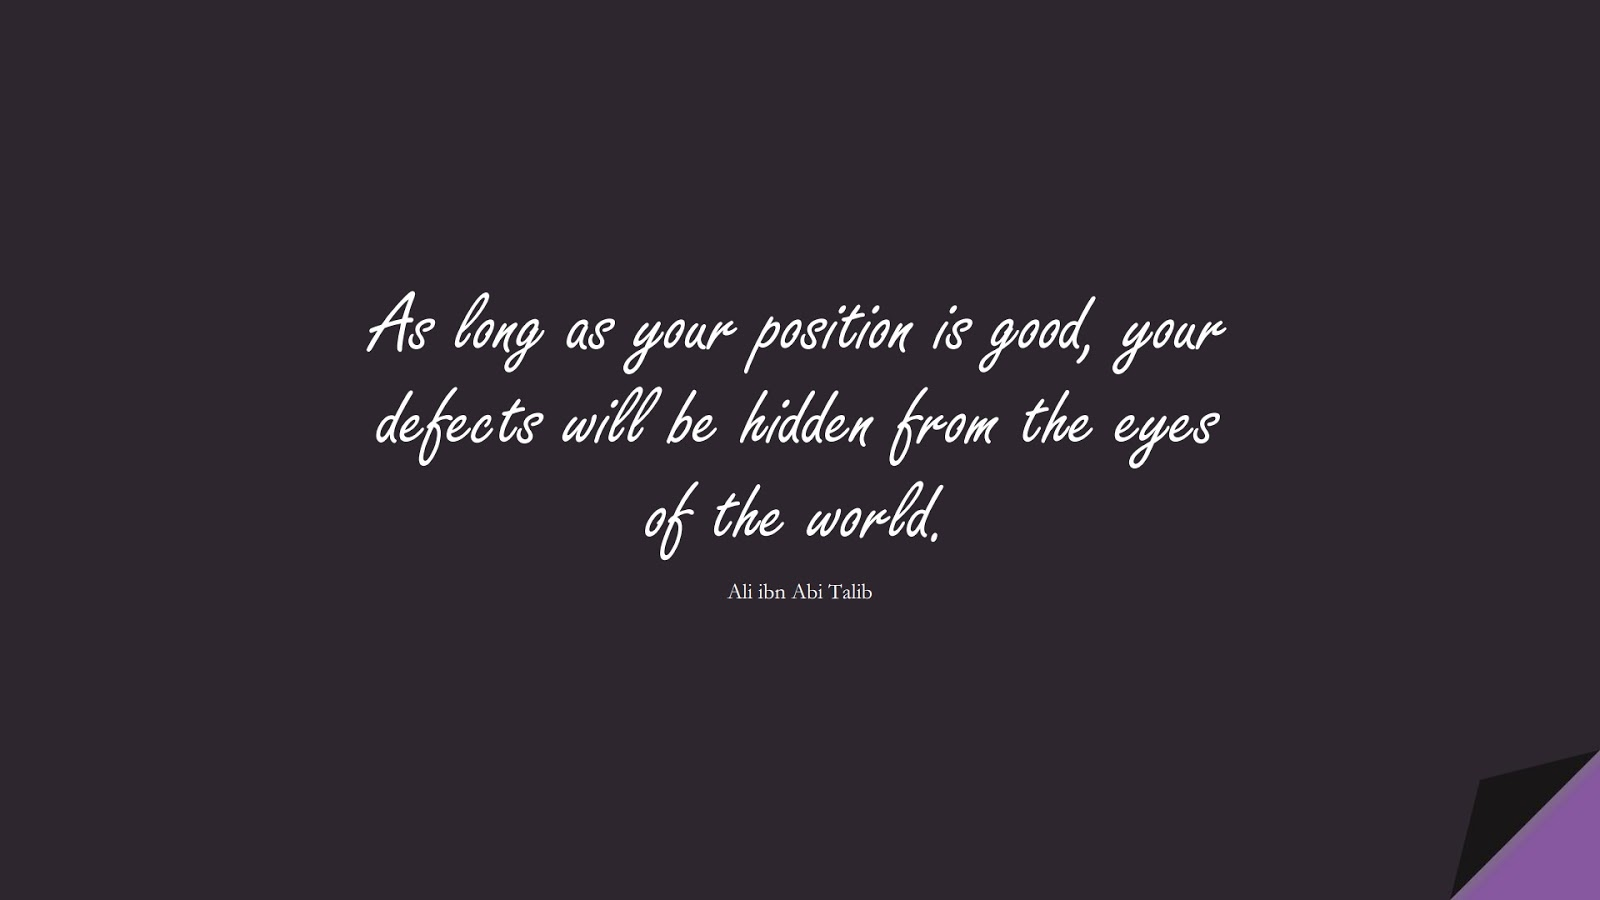 As long as your position is good, your defects will be hidden from the eyes of the world. (Ali ibn Abi Talib);  #AliQuotes